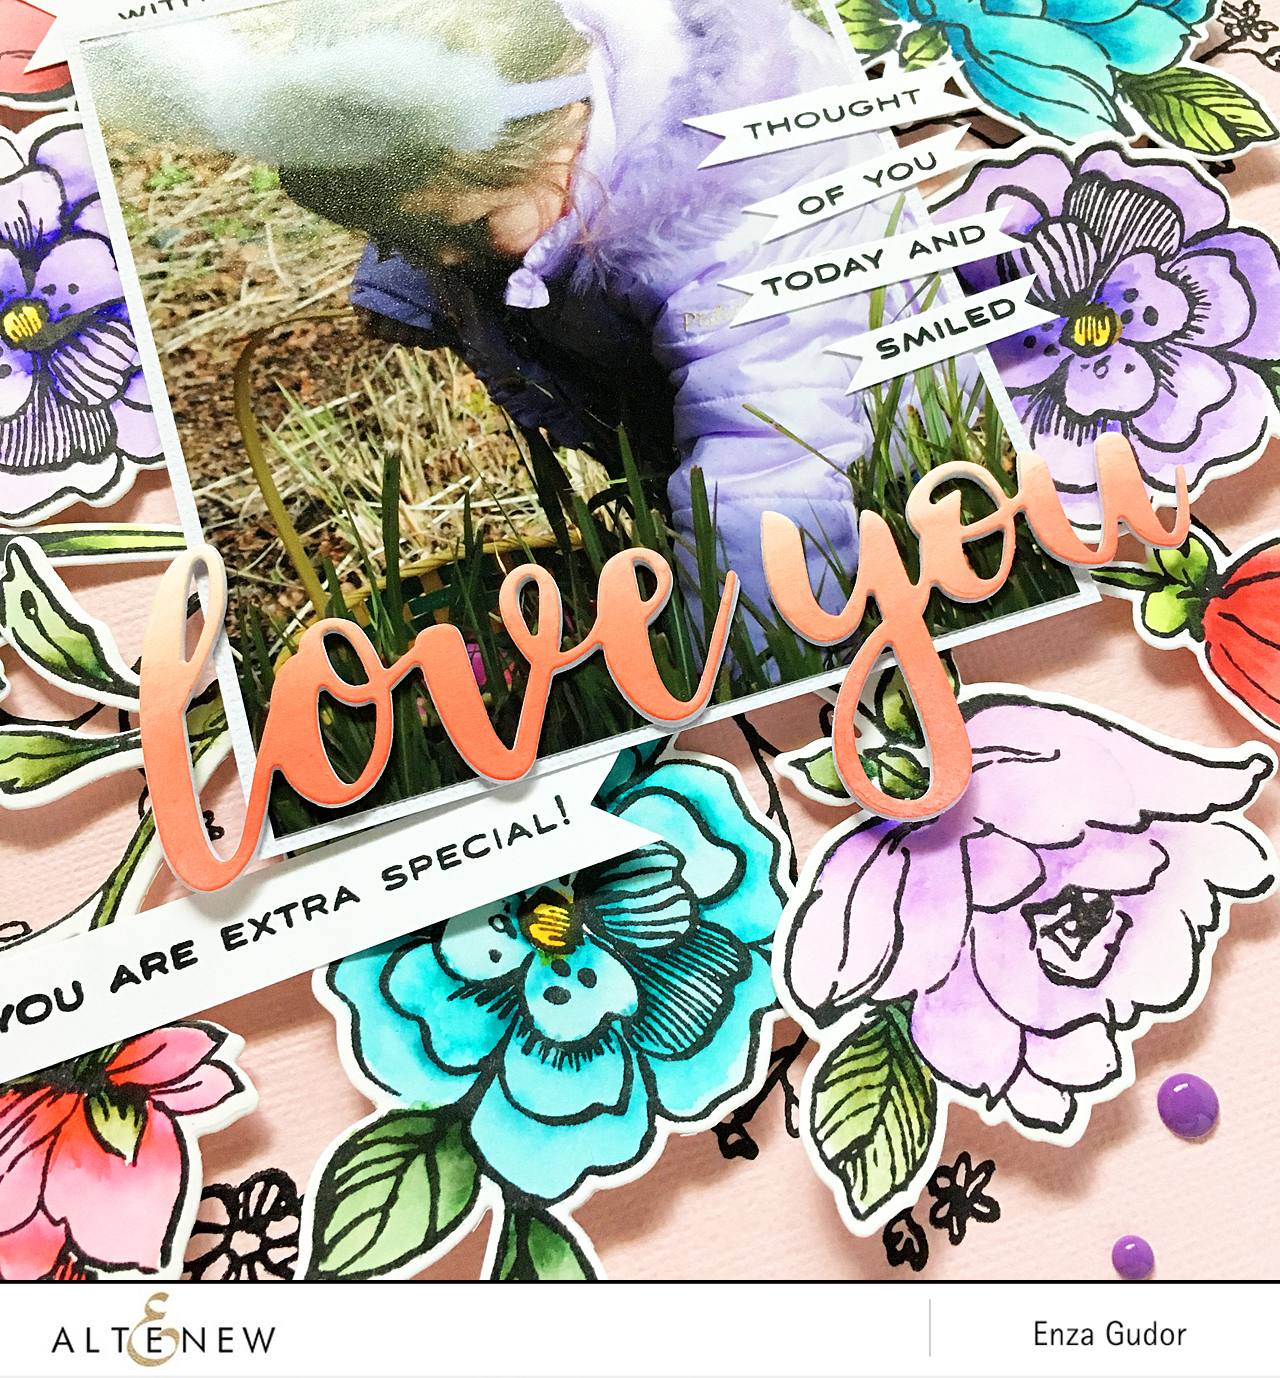 Floral layout by @enzamg for @Altenew using the Botanical Garden Stamp Set.